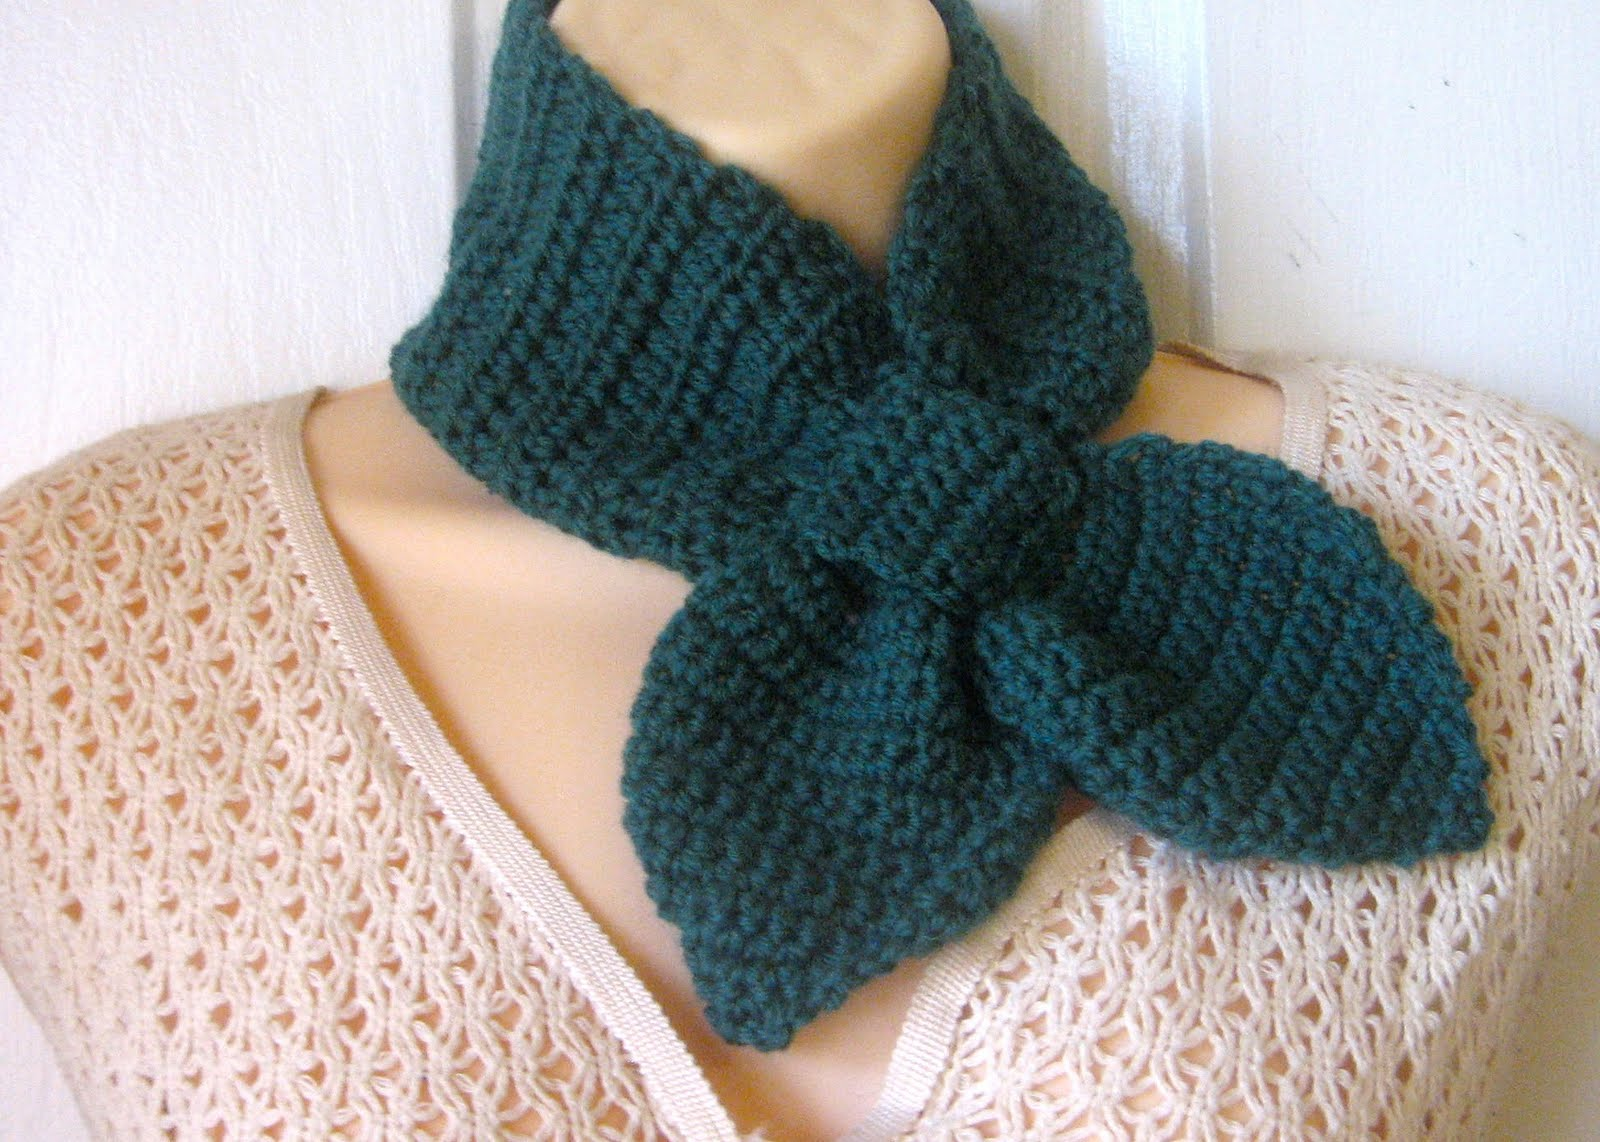 ... Crochet Patterns For Scarves And Neck Warmers Neck Scarves Crochet